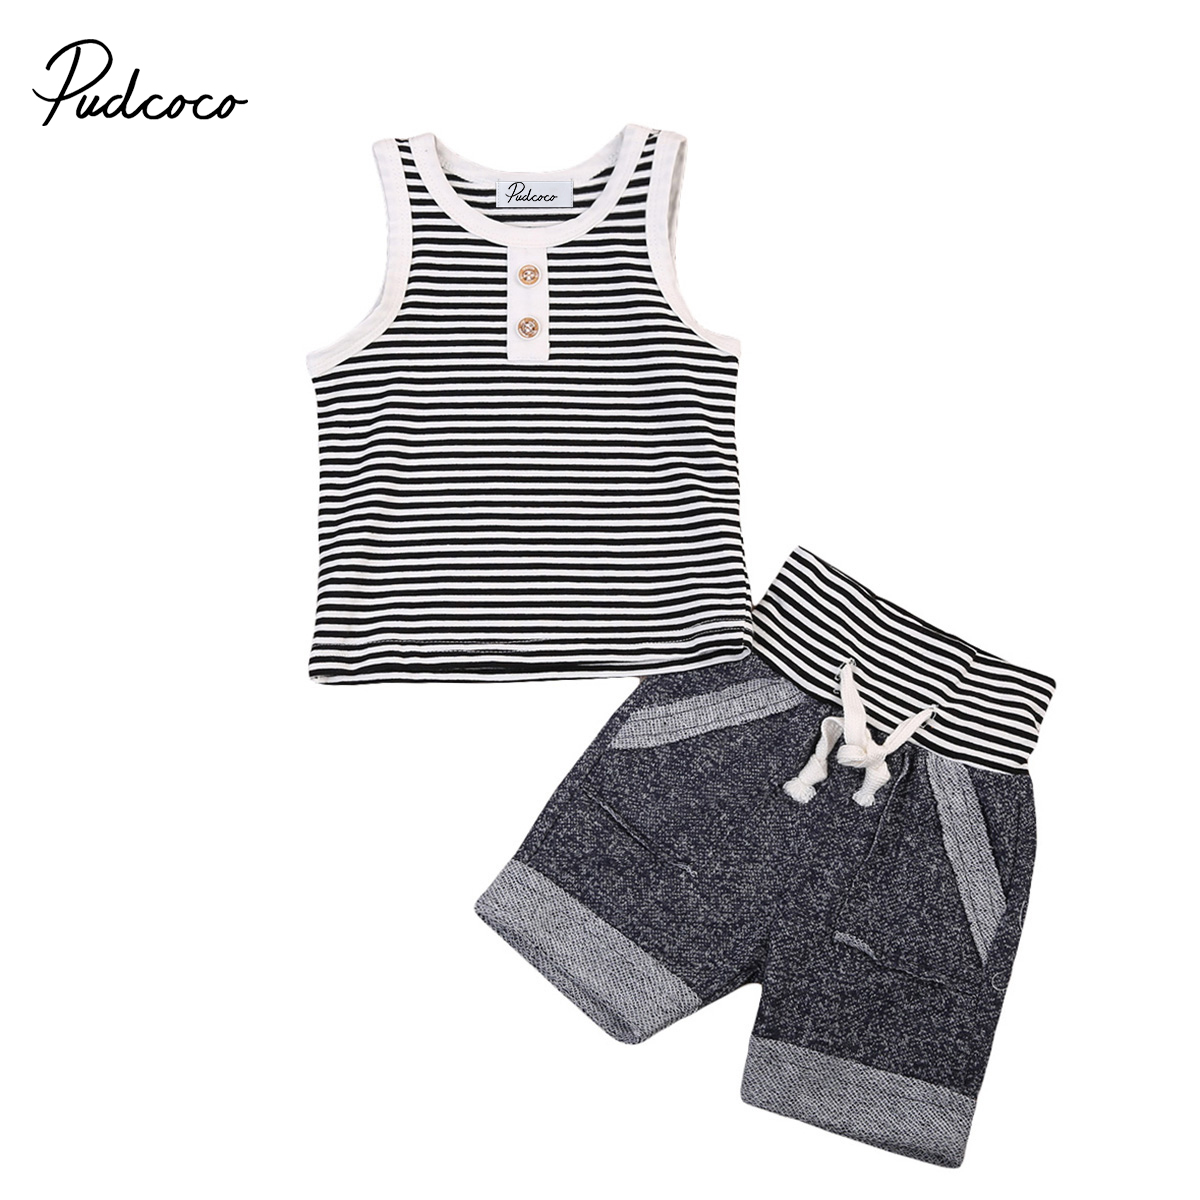 New Baby Toddler Kids Boy Strap Cotton Clothes Sleeveless Casual T-Shirt Tee Top+Pants Outfits Set 2pcs set baby clothes set boy